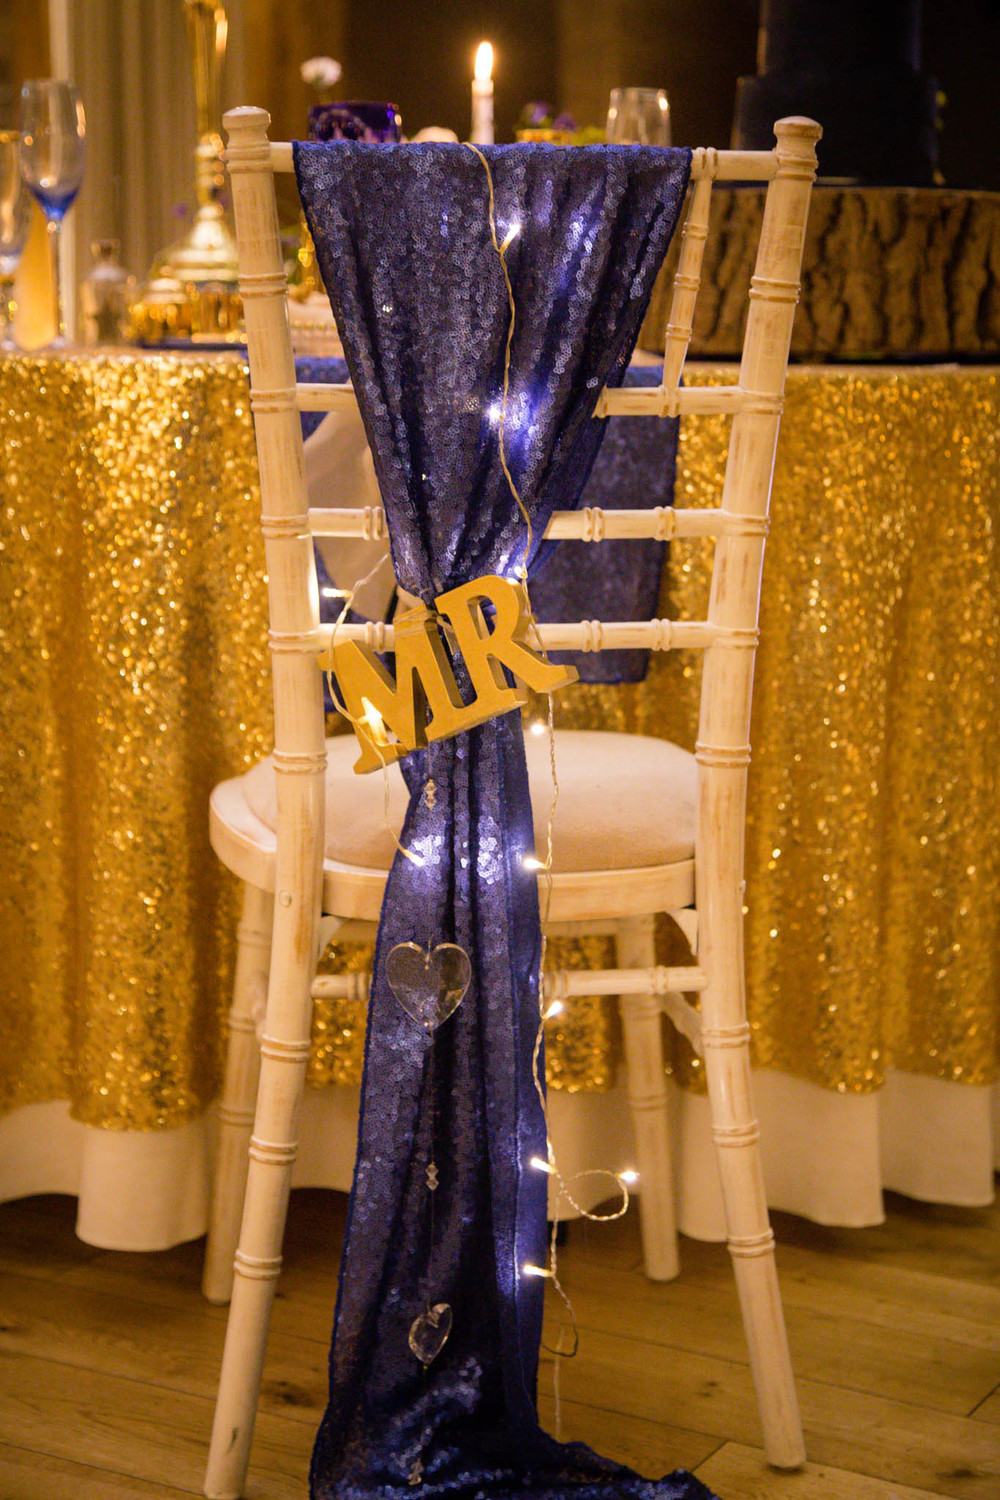 starry-night-themed-wedding-starry-night-themed-shoot-navy-and-gold-wedding-palette-laura-grace-photography-33